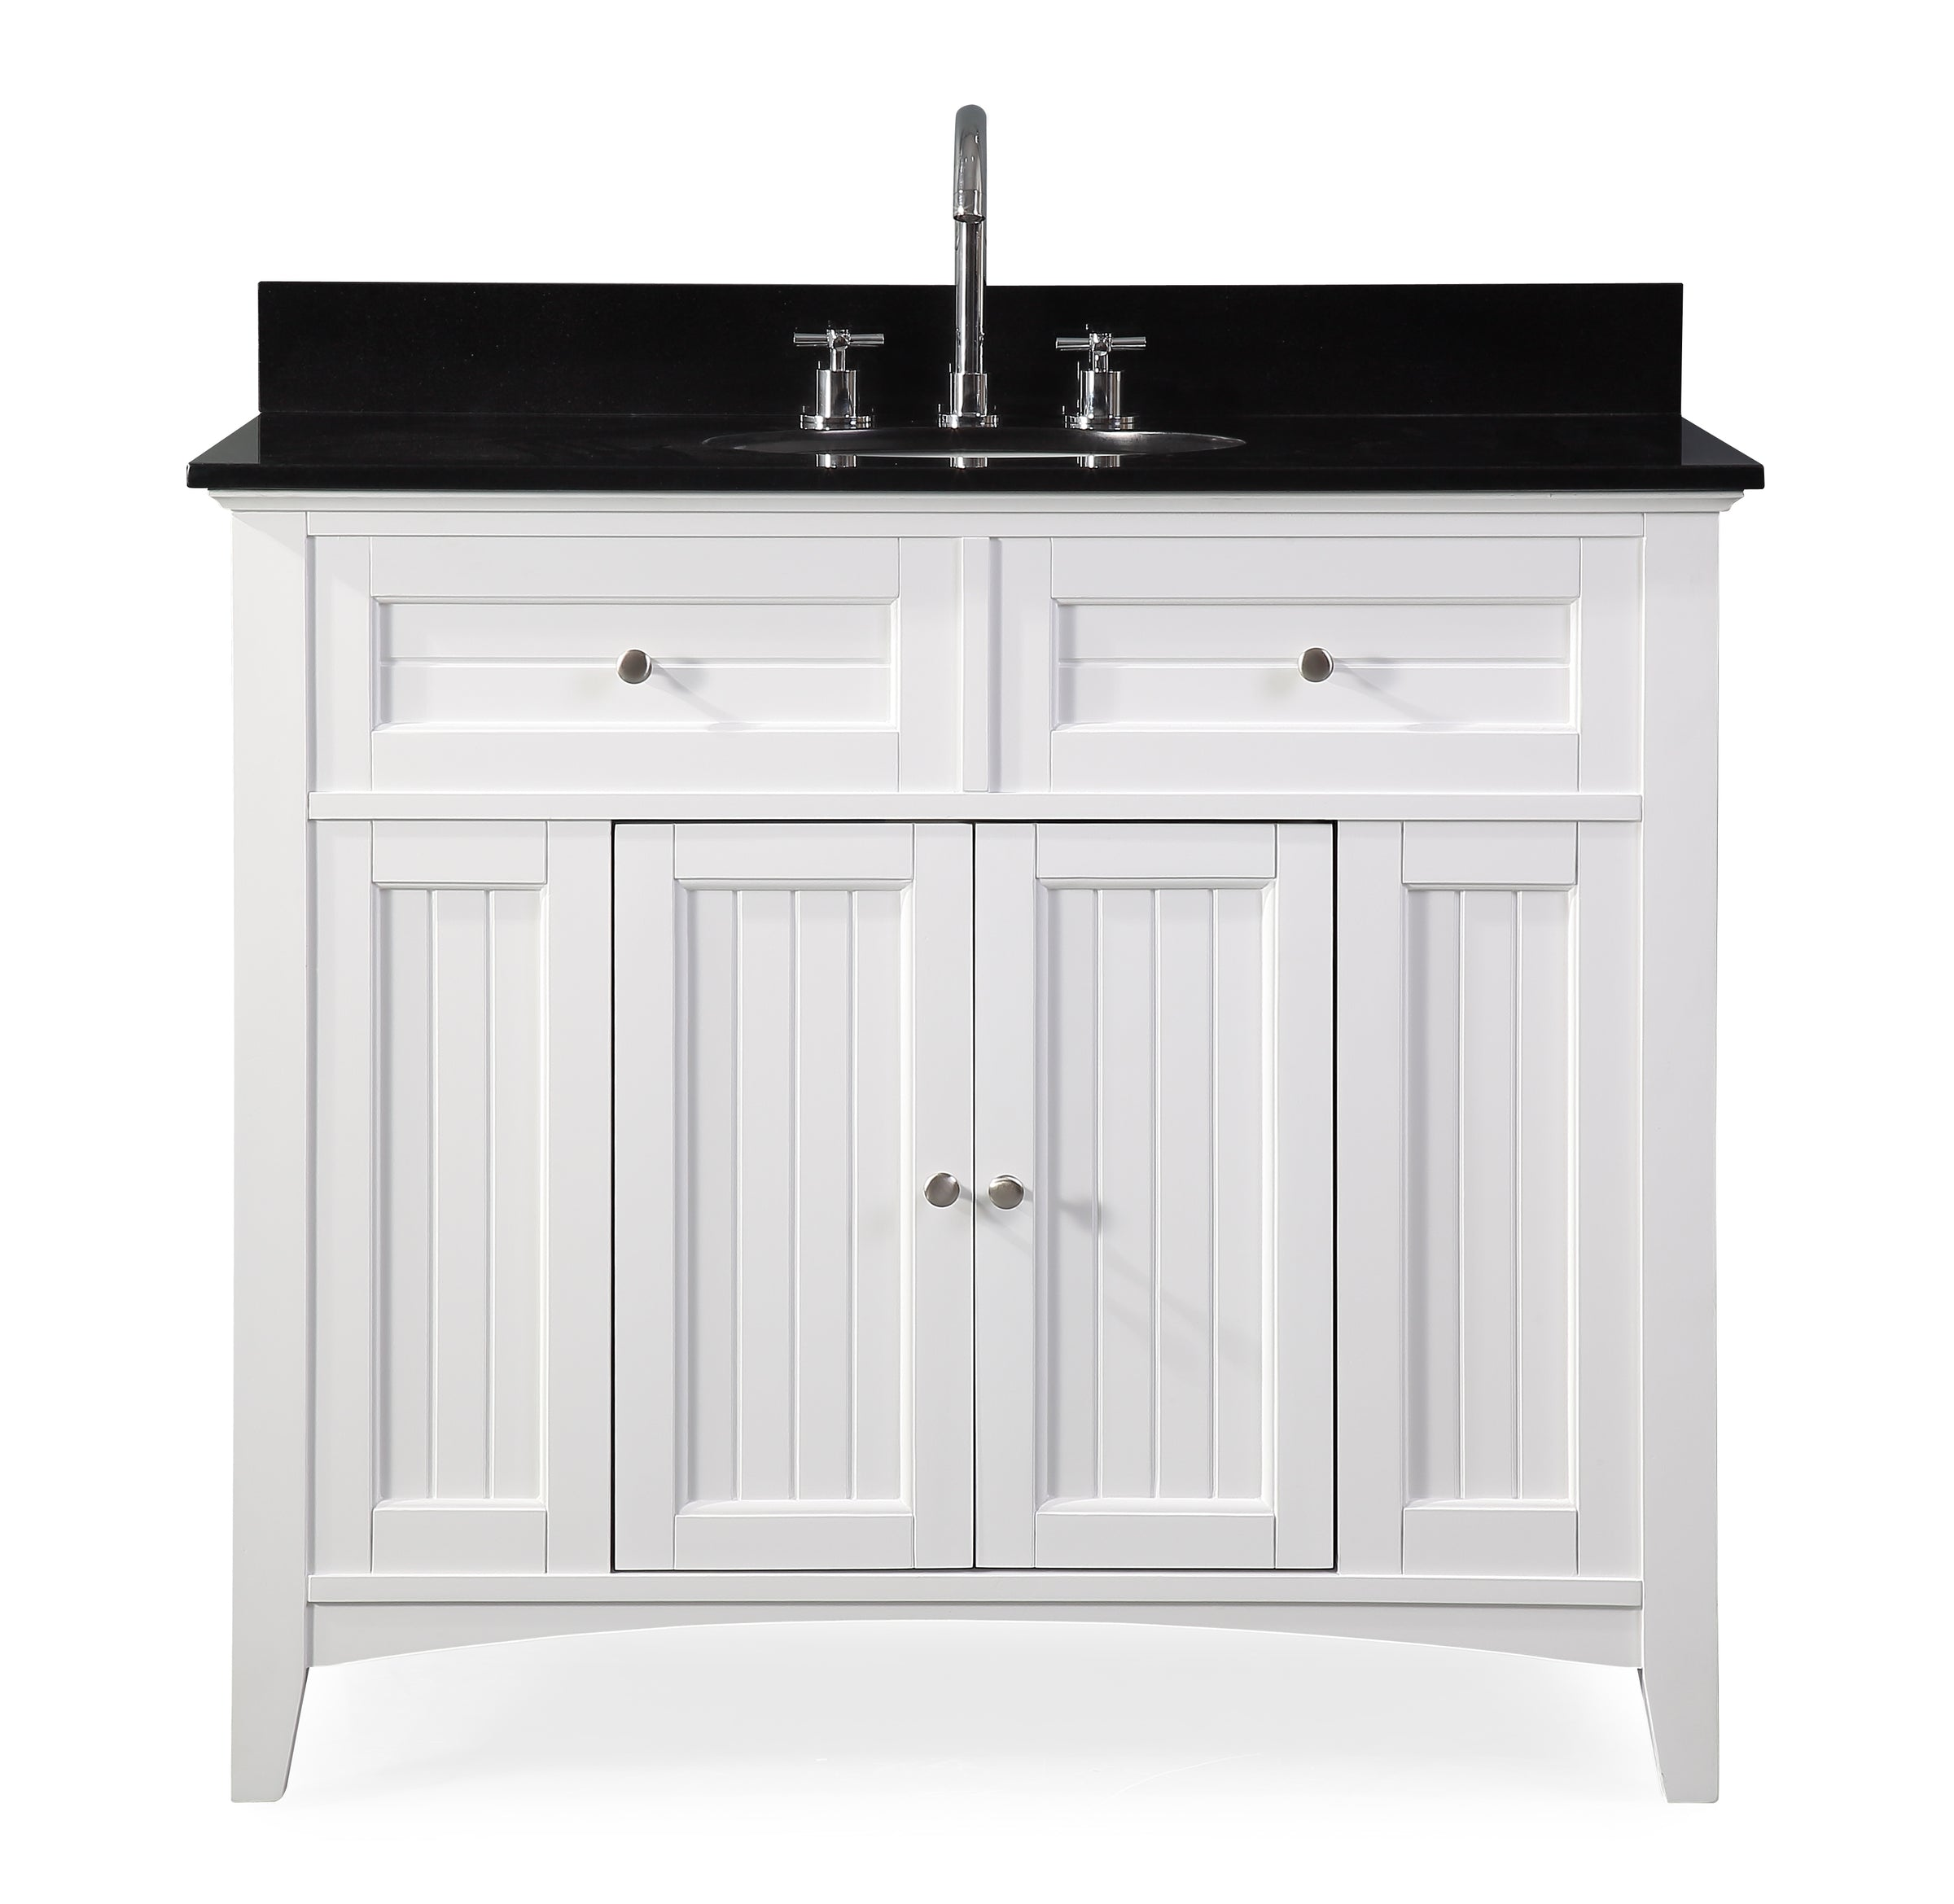 Astounding 42 Causal Style Thomasville Bathroom Sink Vanity Cabinet Home Interior And Landscaping Elinuenasavecom